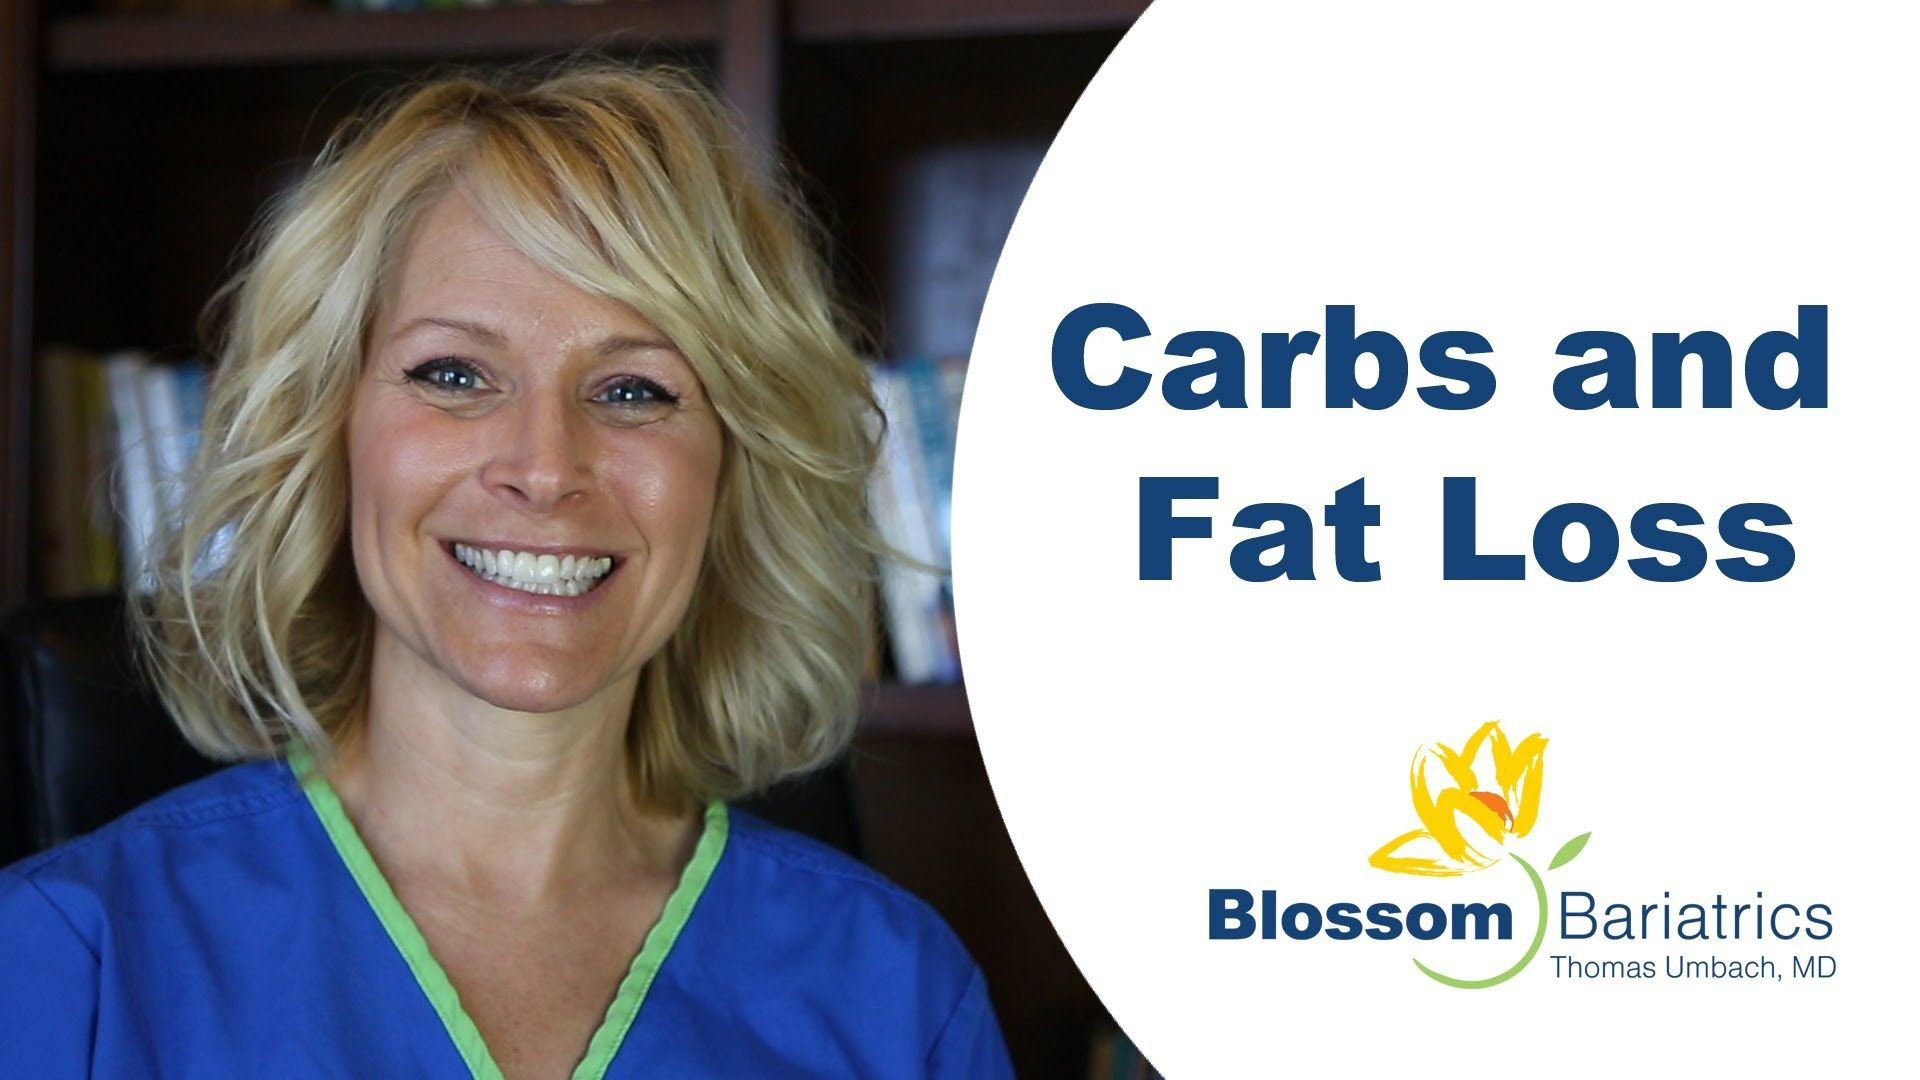 Carbs and Fat Loss after Bariatric Weight Loss Surgery